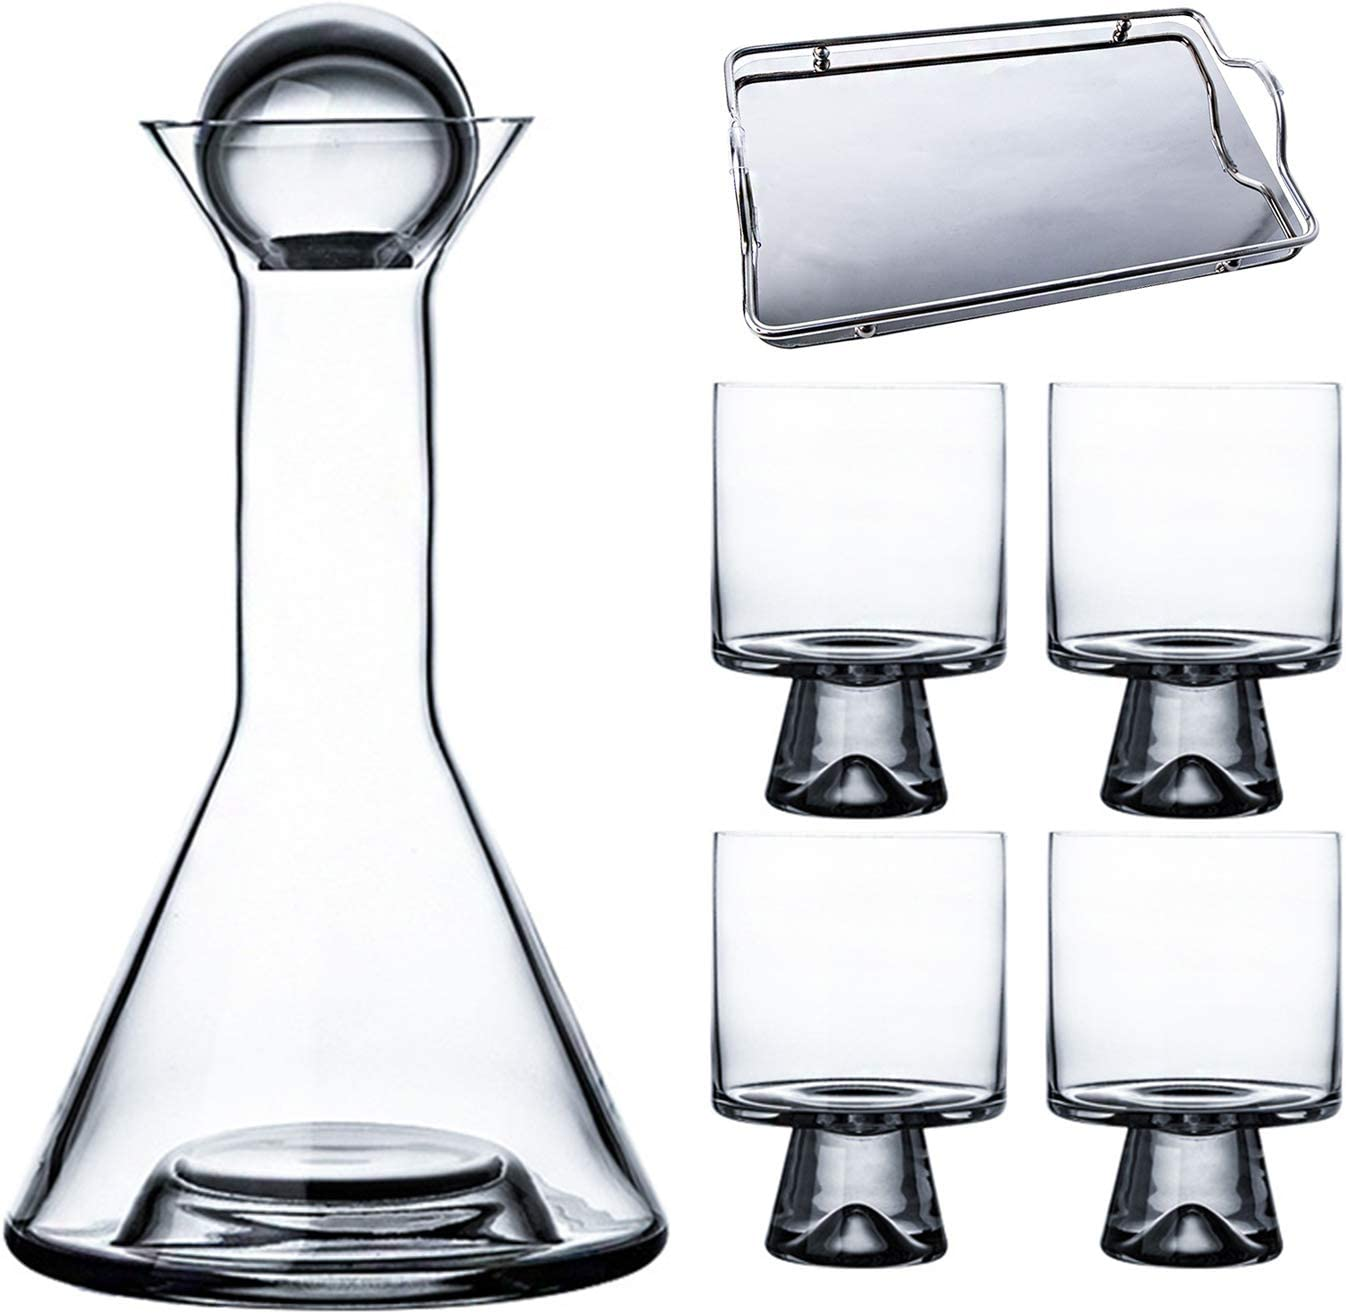 NBSXR -Wine Decanter Set Home Soft Fees free!! Bottle Coppe Glass Max 79% OFF